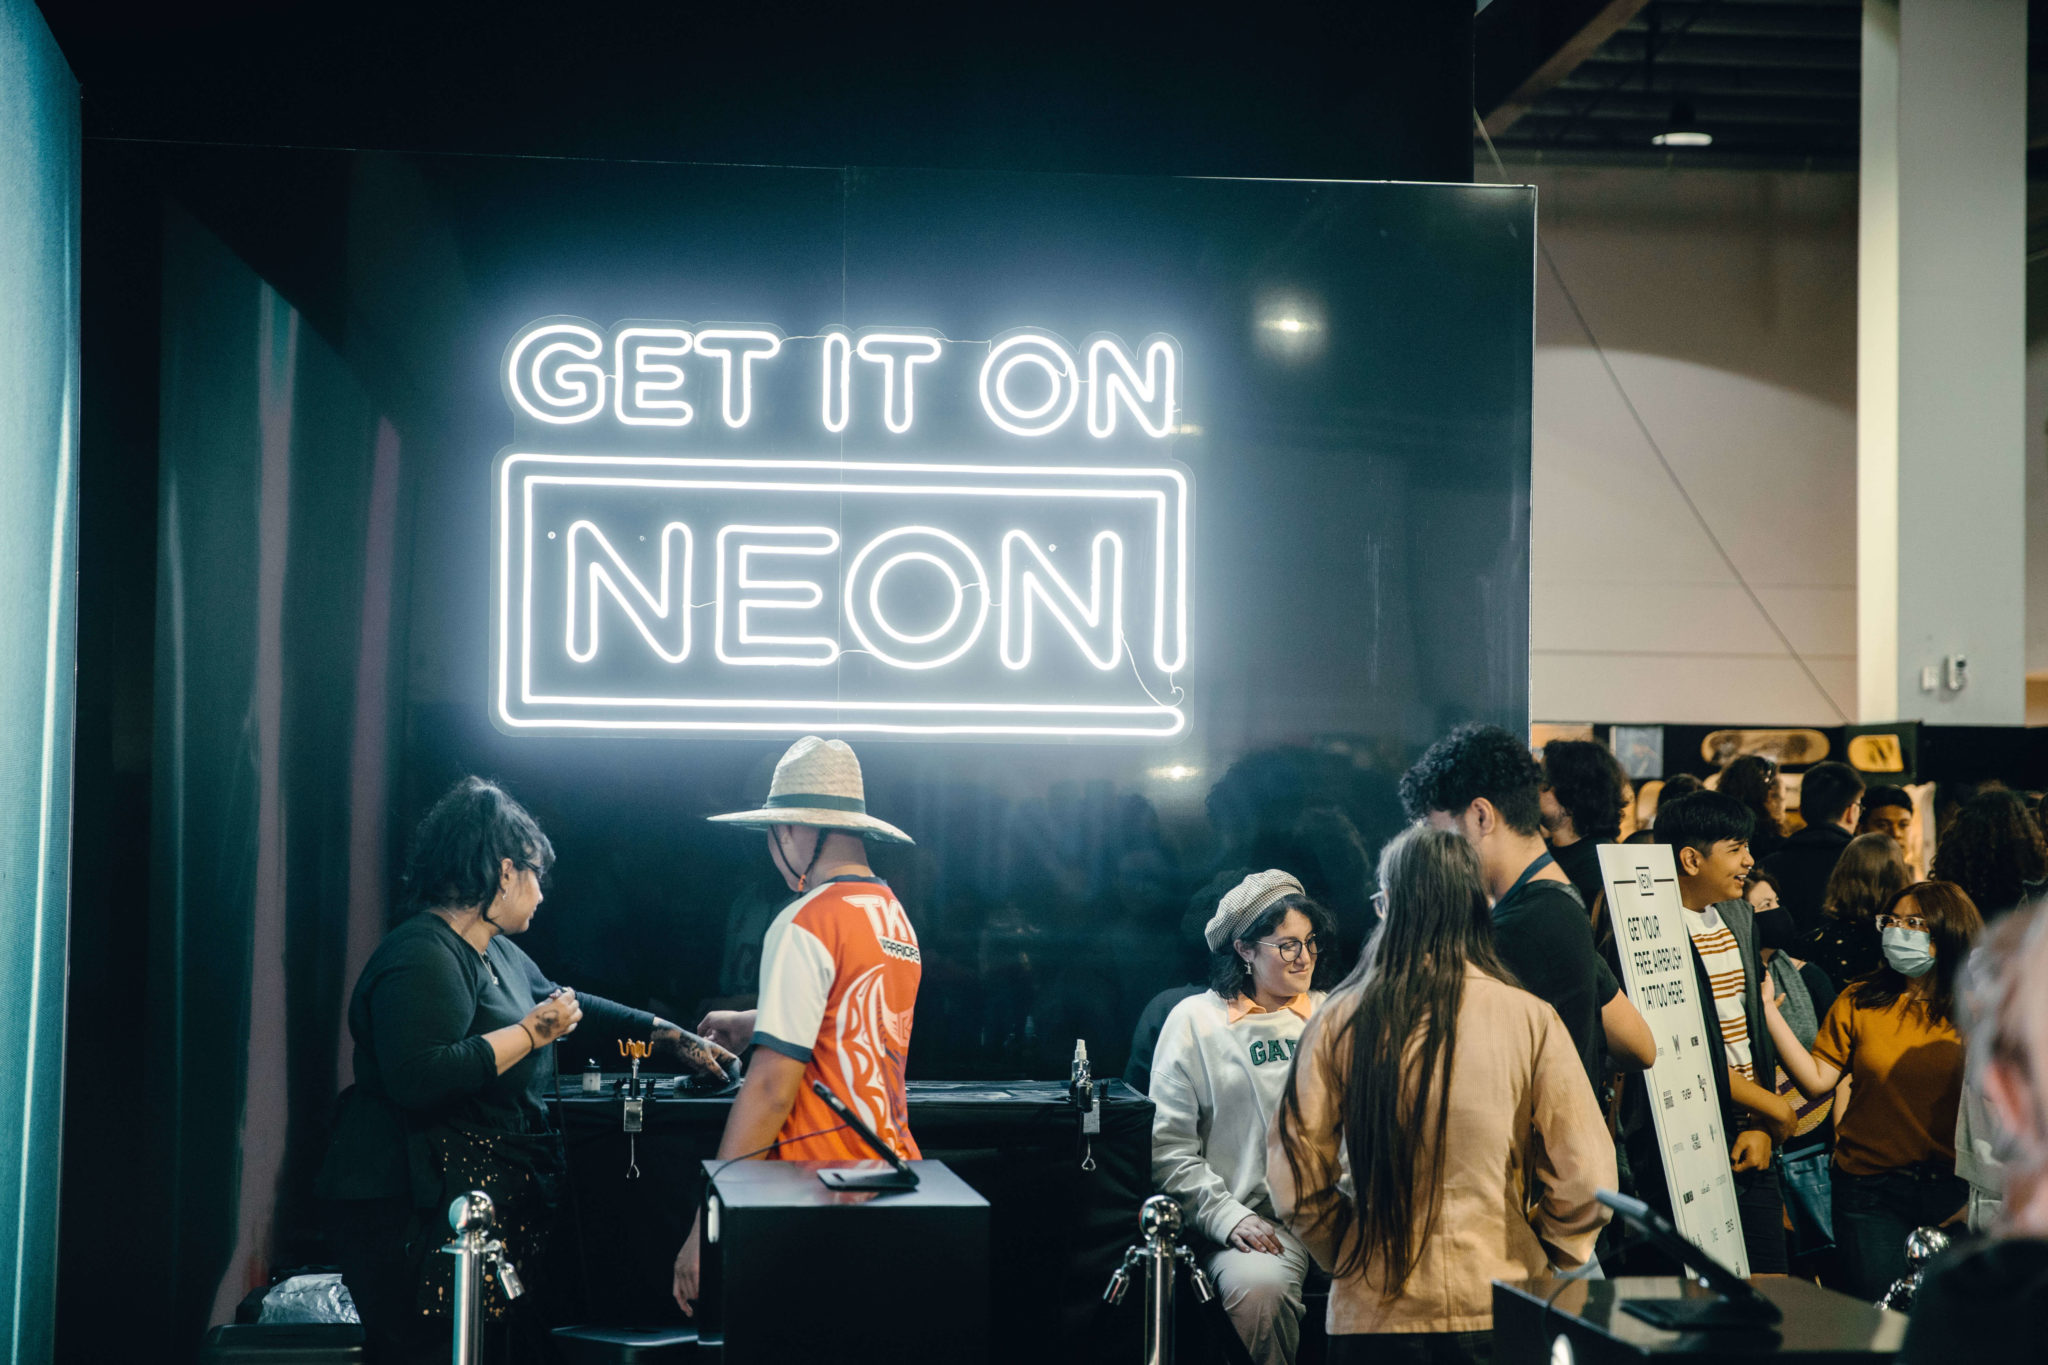 Auckland Armageddon 2020 – NEON Brand Activation X Type 40 Events | Airbrush Tattoos